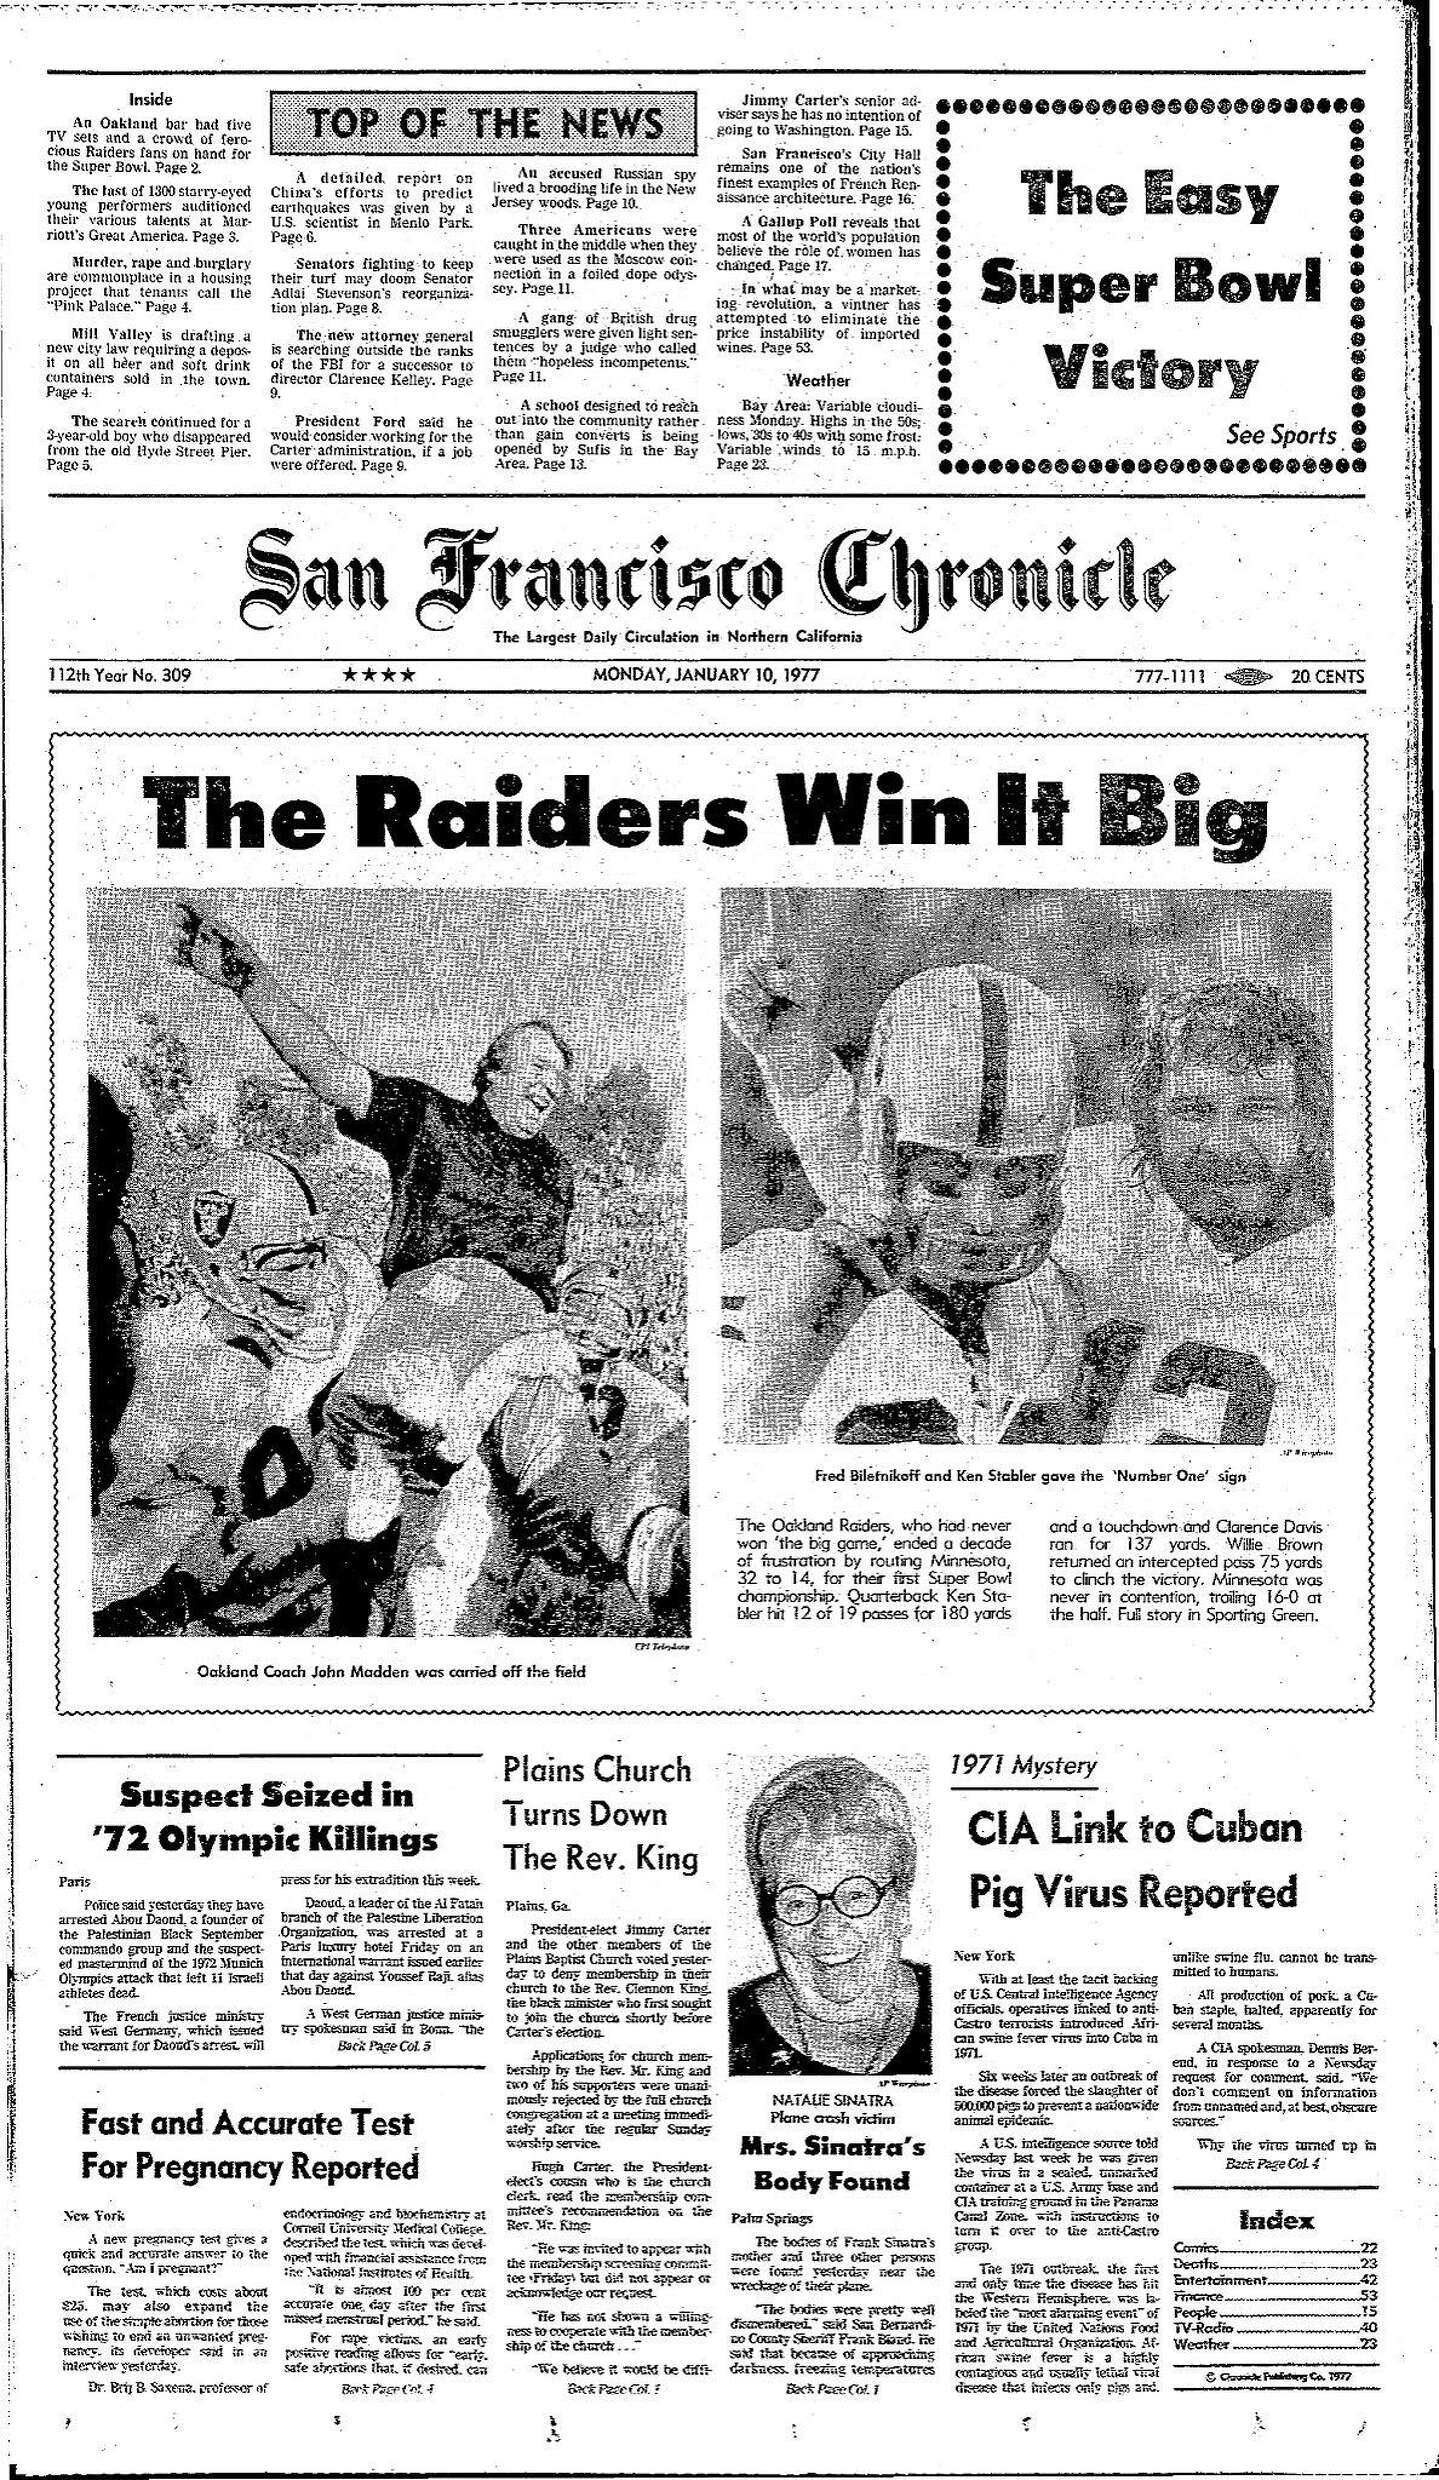 Chronicle Covers When The Raiders Won Their First Super